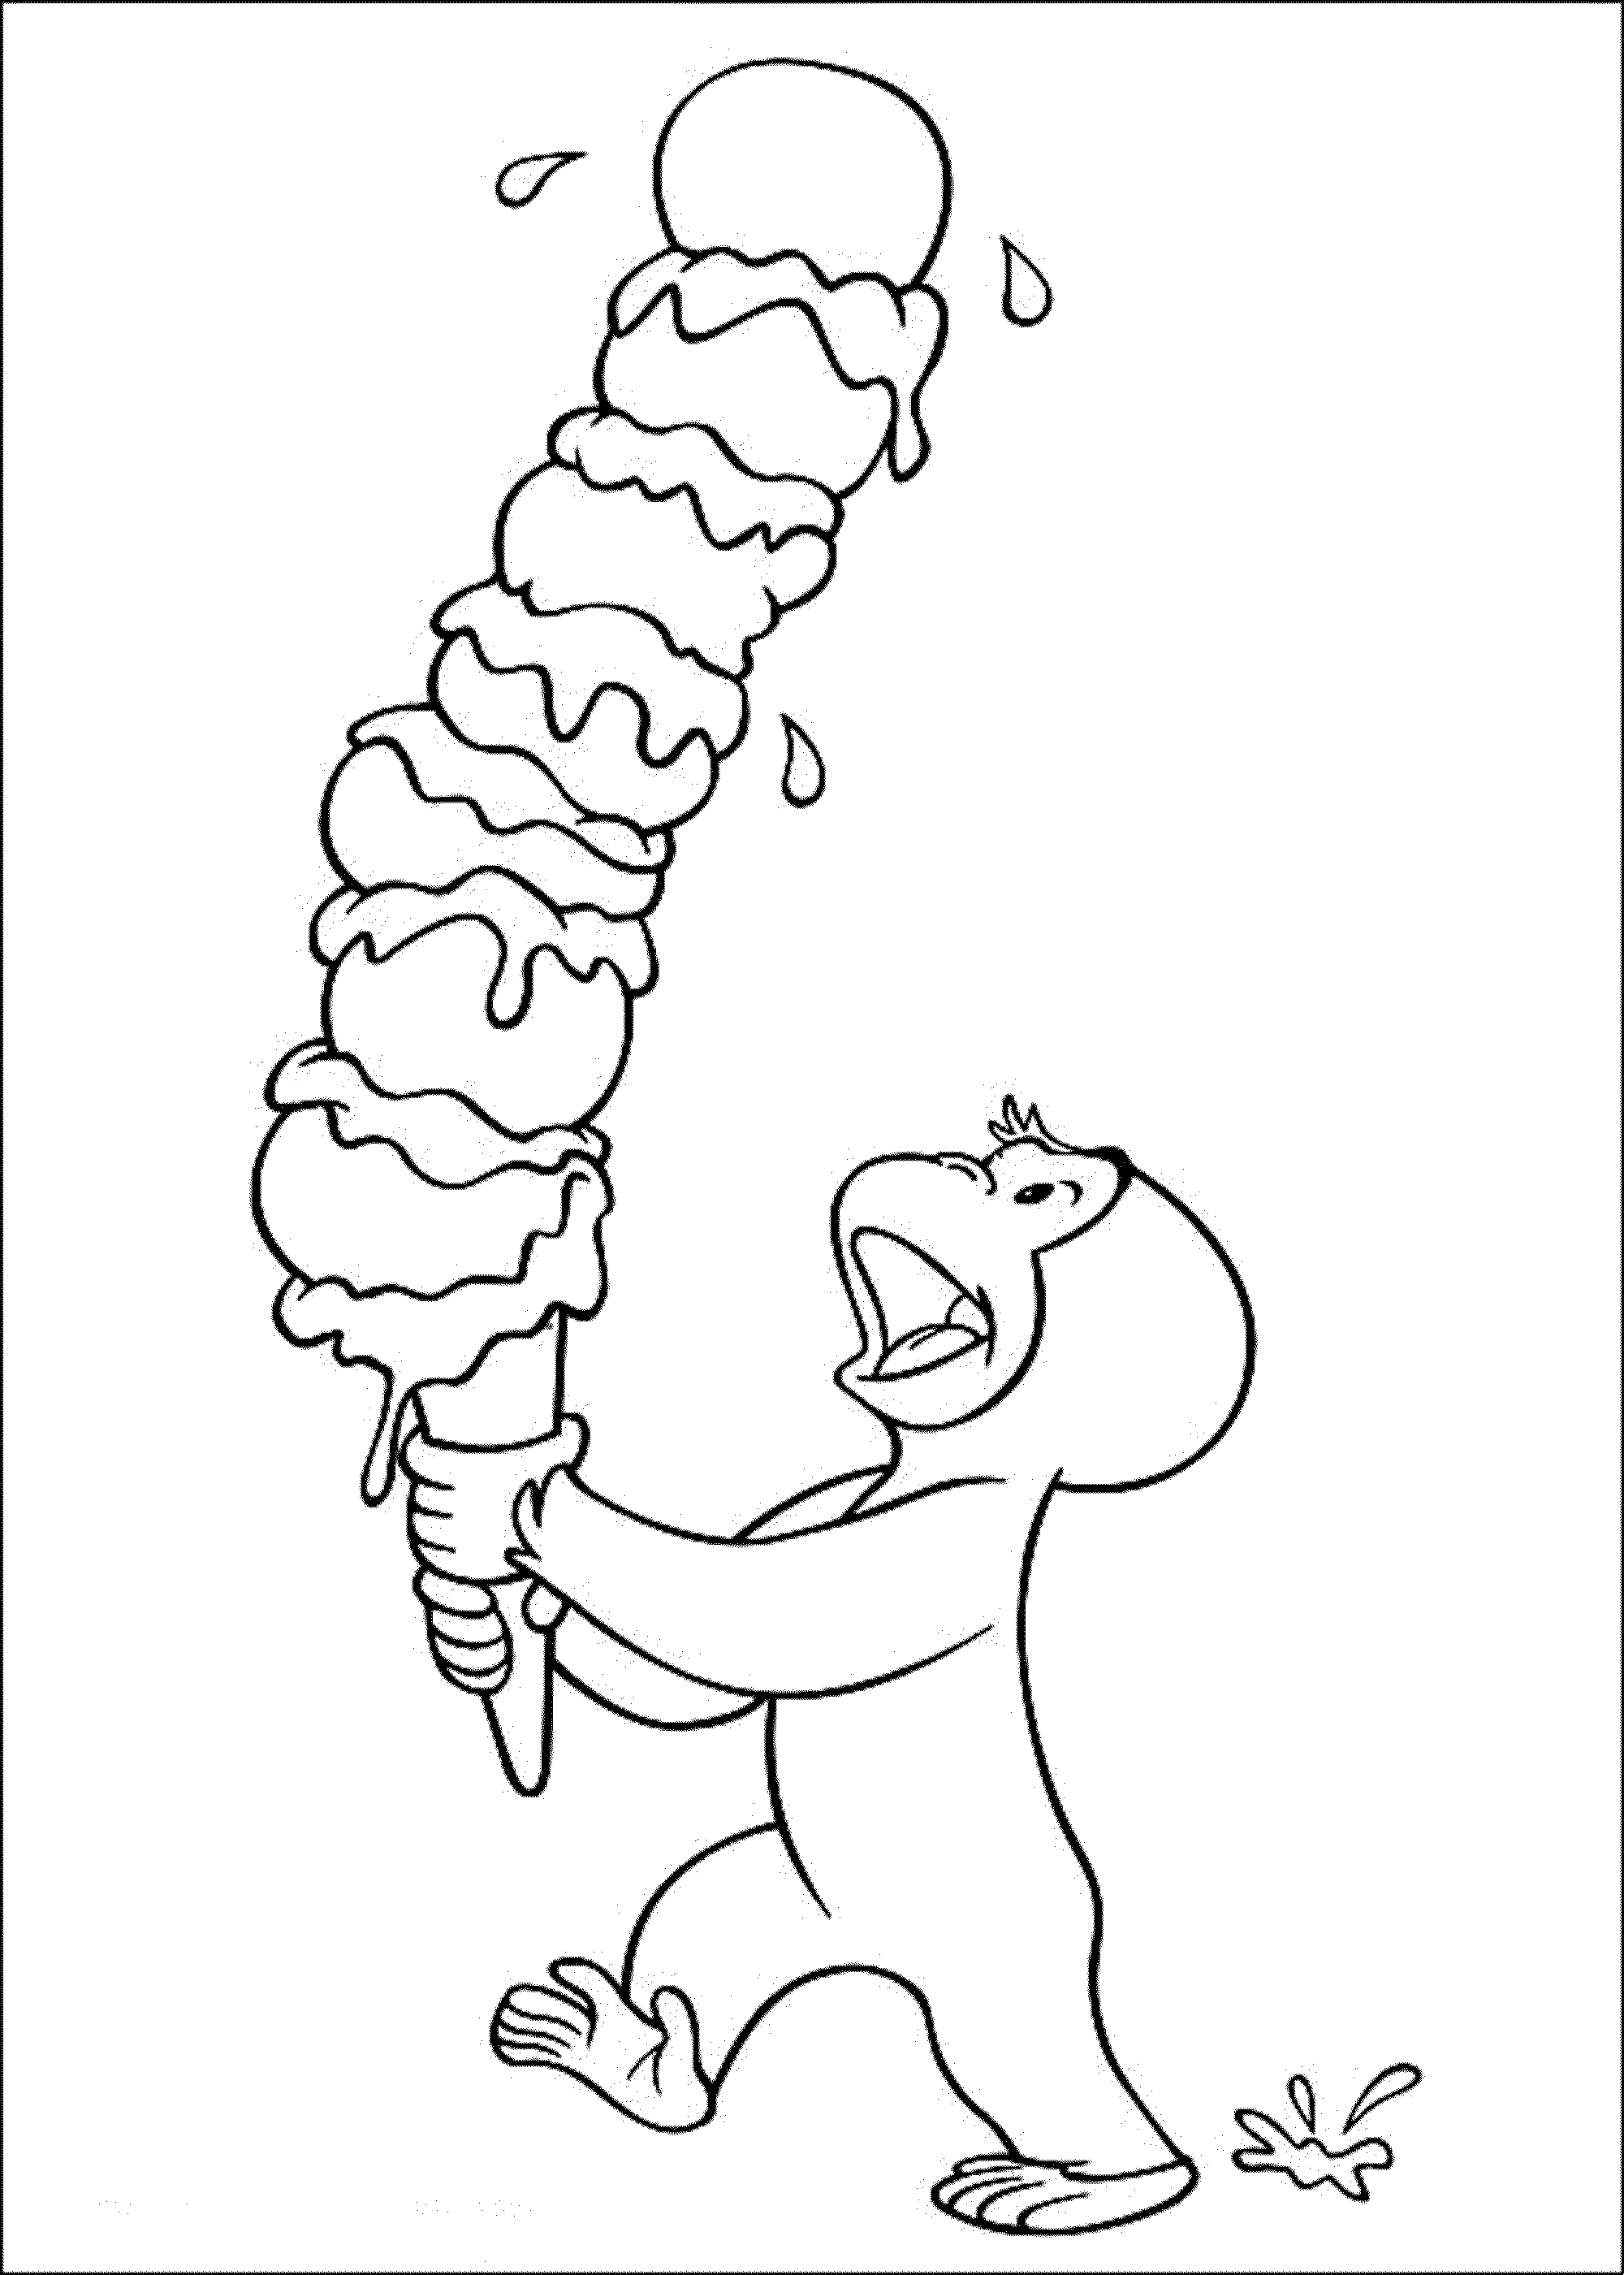 coloring pages of curious george - photo#19